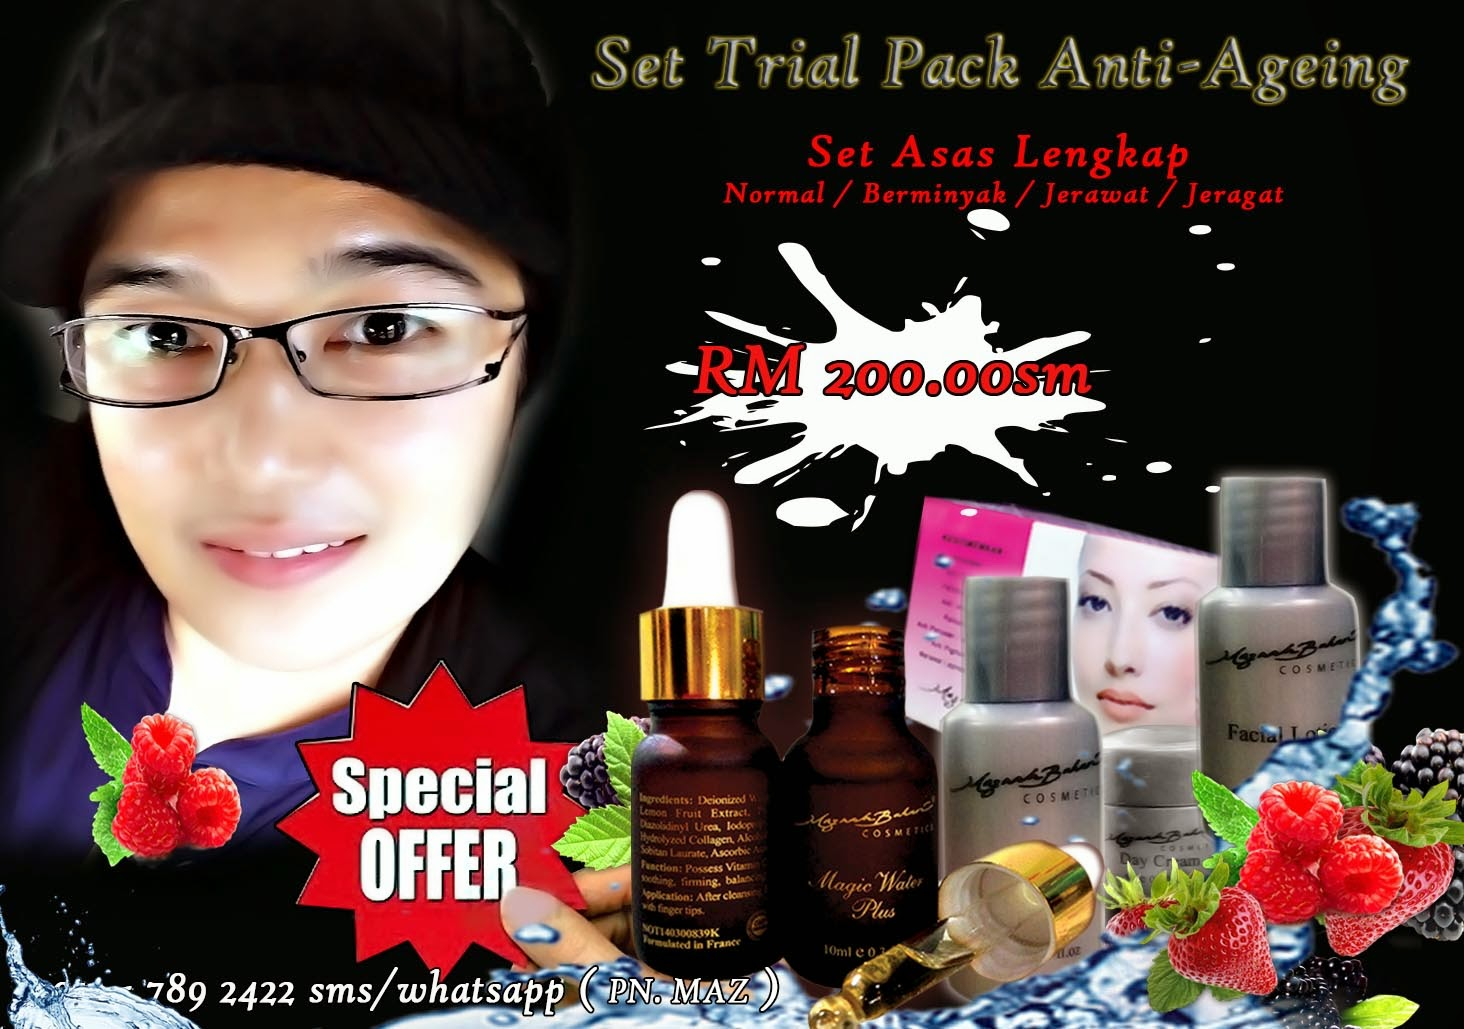 Trial Pack Anti Ageing